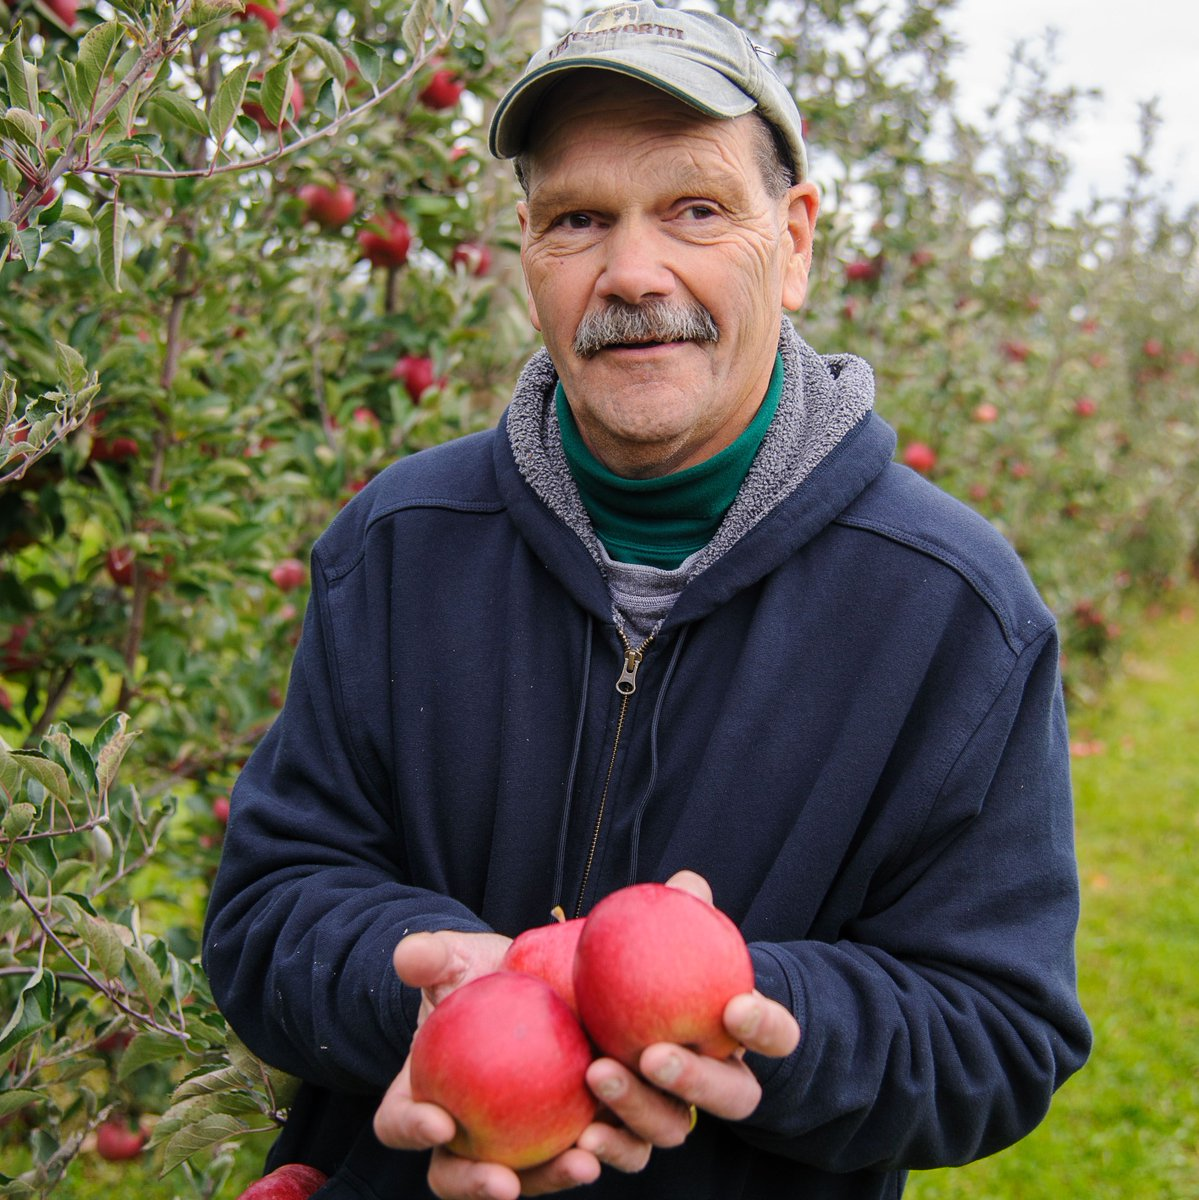 Meet Rick, an apple farmer who donated over 22,000 pounds of apples to his local food bank! We're so thankful for farmers like Rick! #NationalFarmersDay 🍎👨🌾  Read Rick's story: https://t.co/OxkTxaKzkB https://t.co/oDugk0eLwE